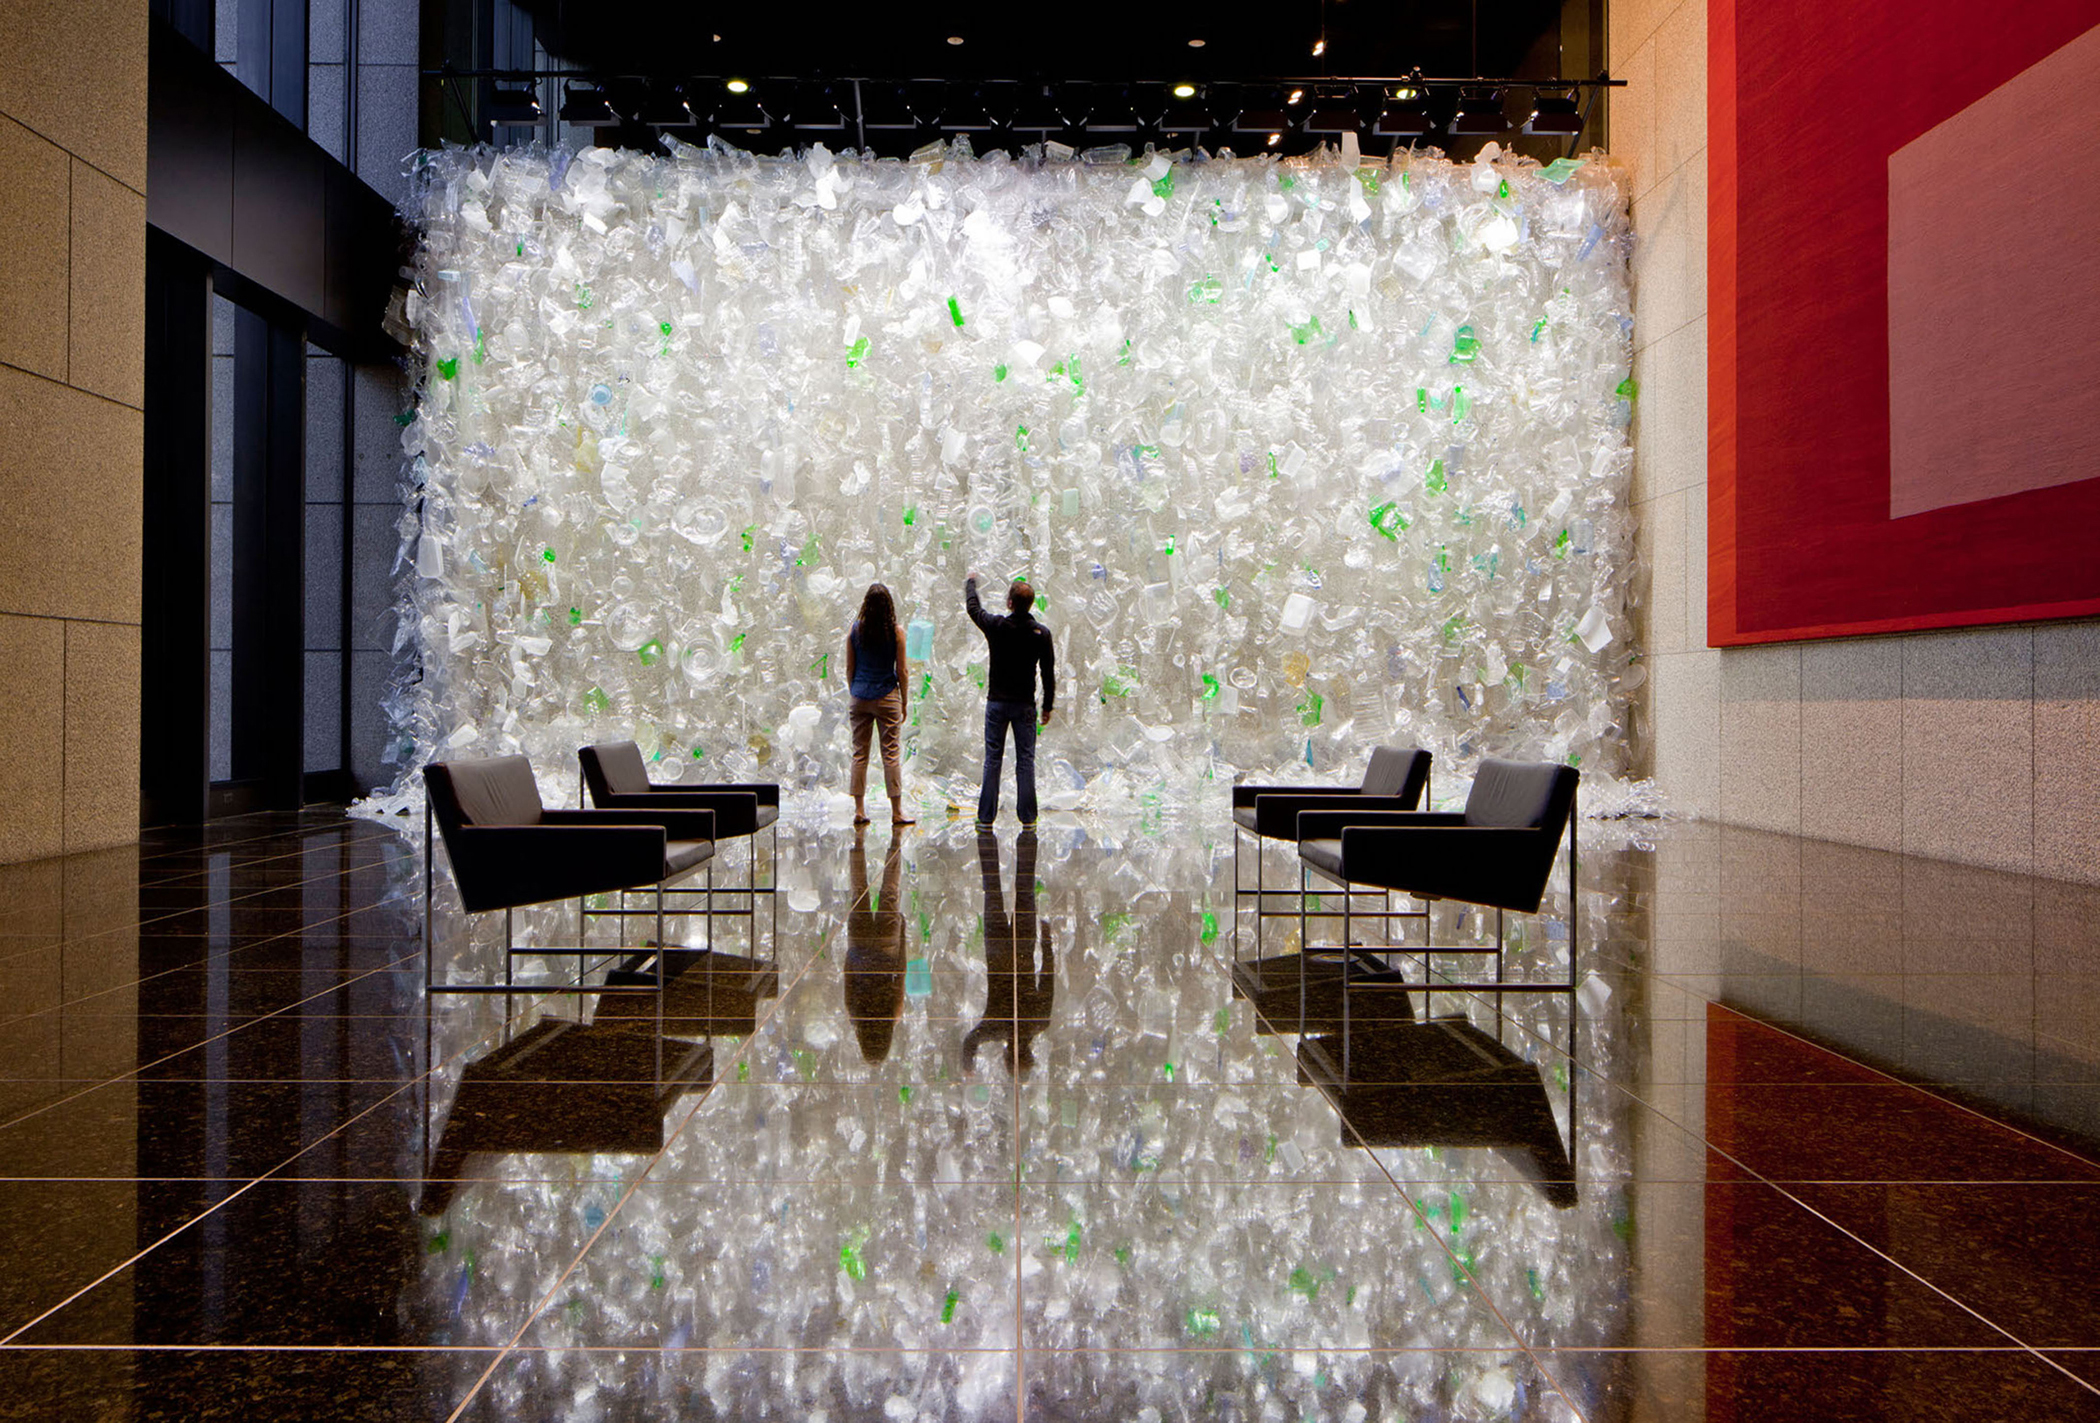 Waterfall 2013 recycled plastic, monofilament 18x34x2ft (Bank of America, Los Angeles) art installation commissioned by Brookfield Properties photo by Charles LeNoir